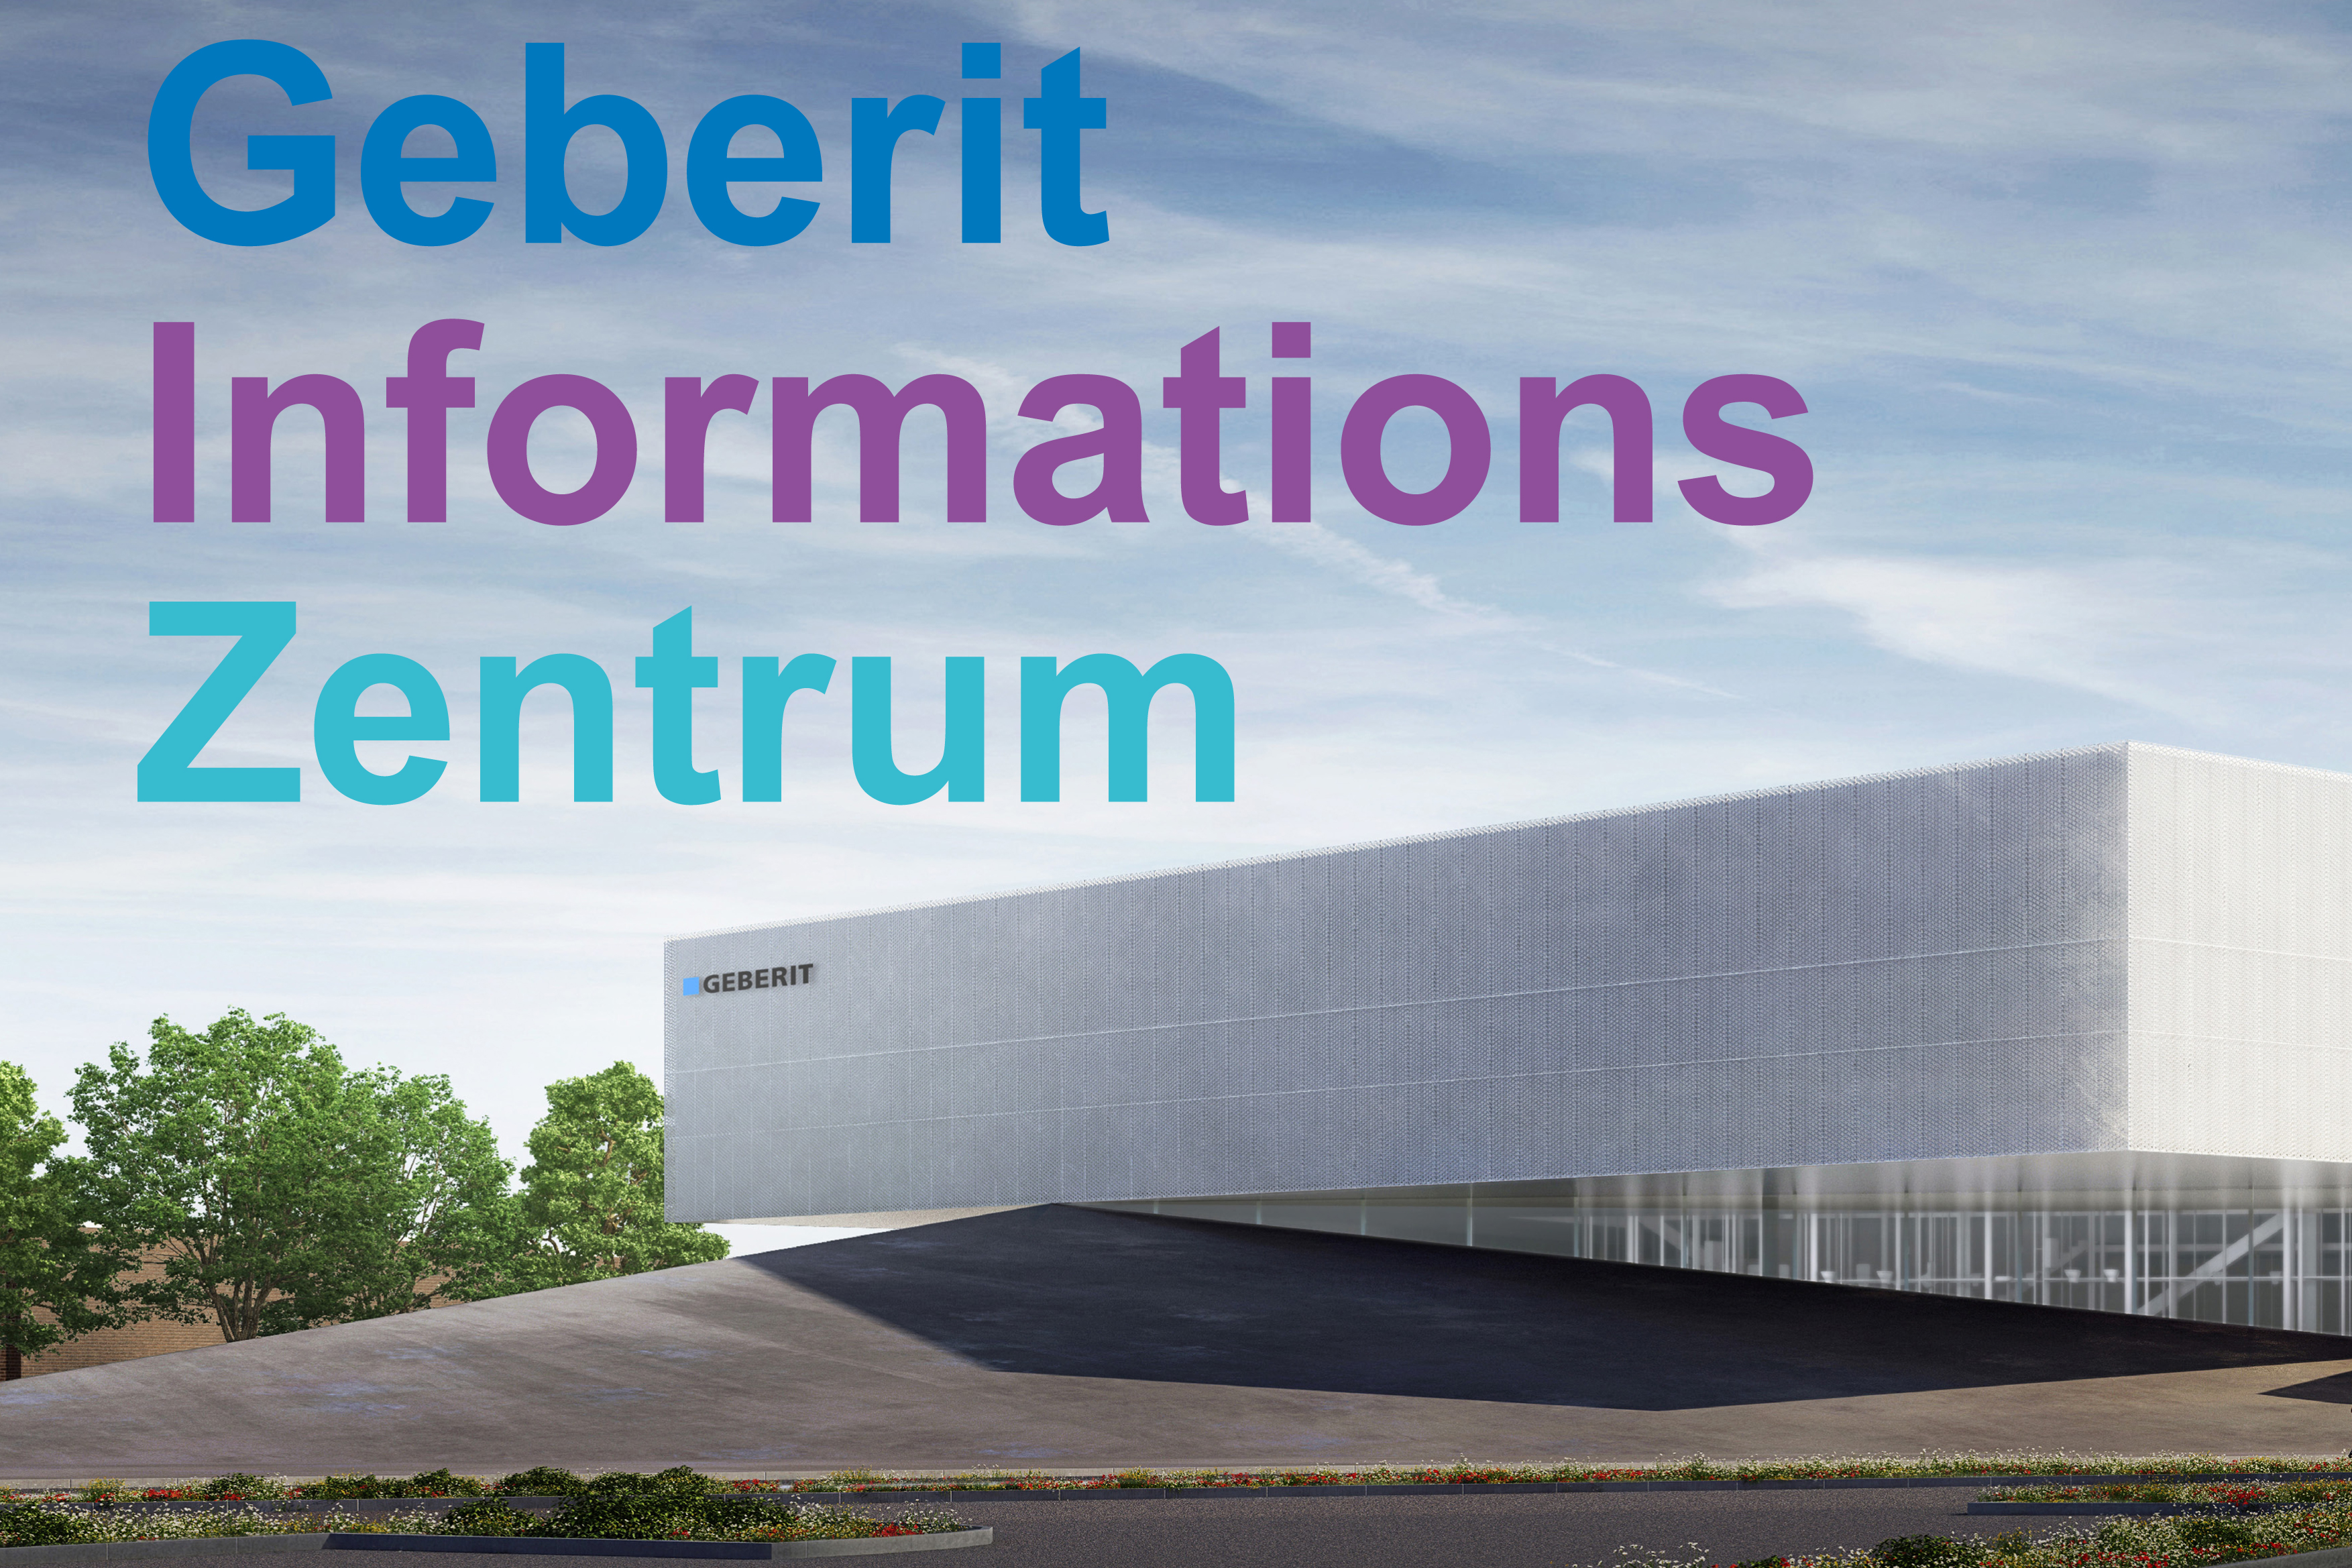 Geberit Informationszentrum